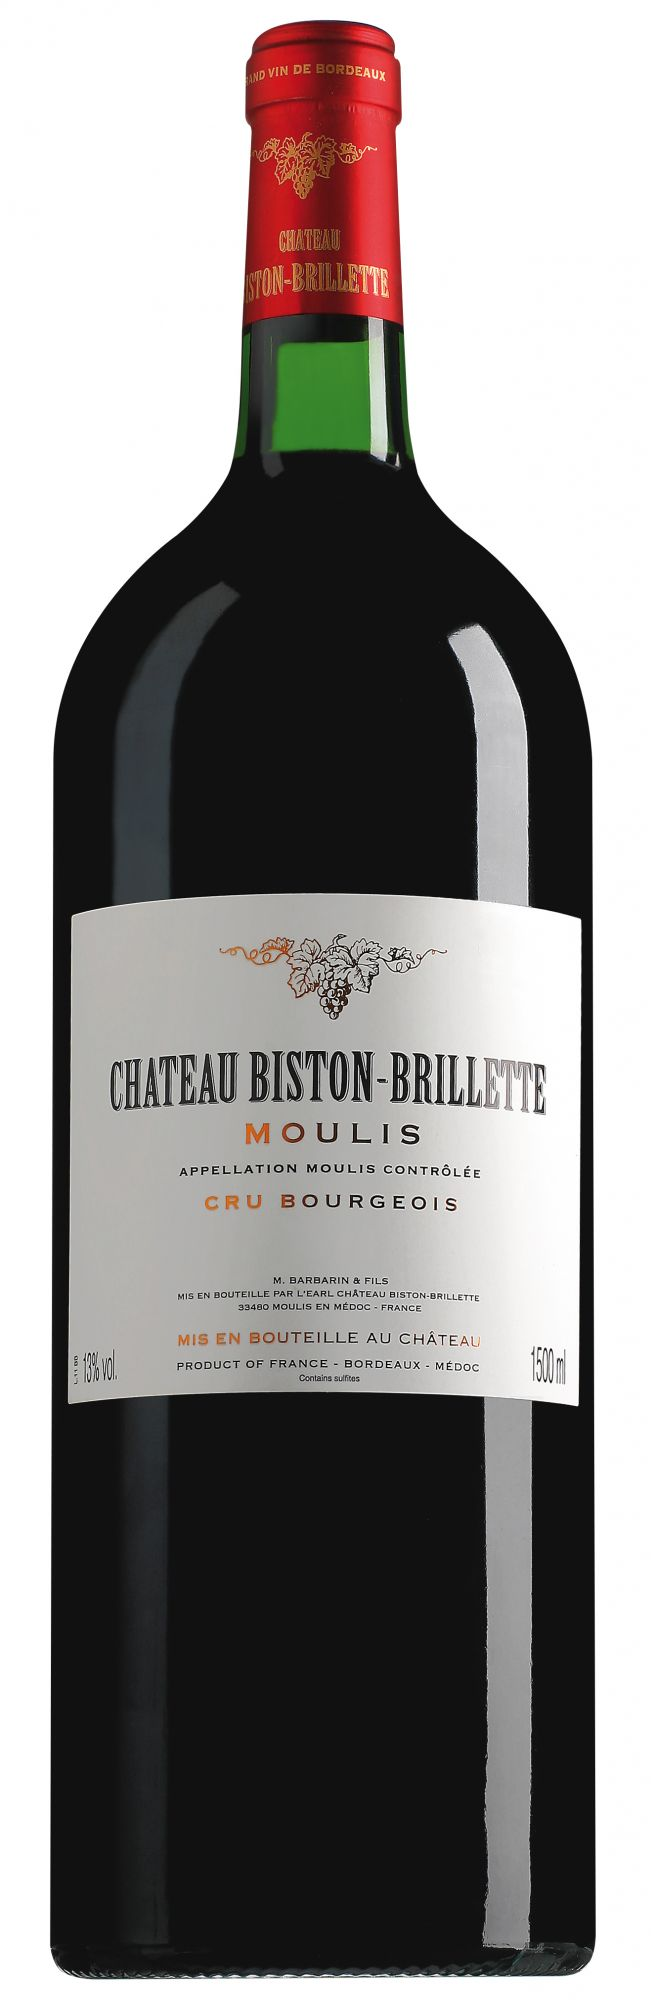 Château Biston-Brillette Moulis magnum